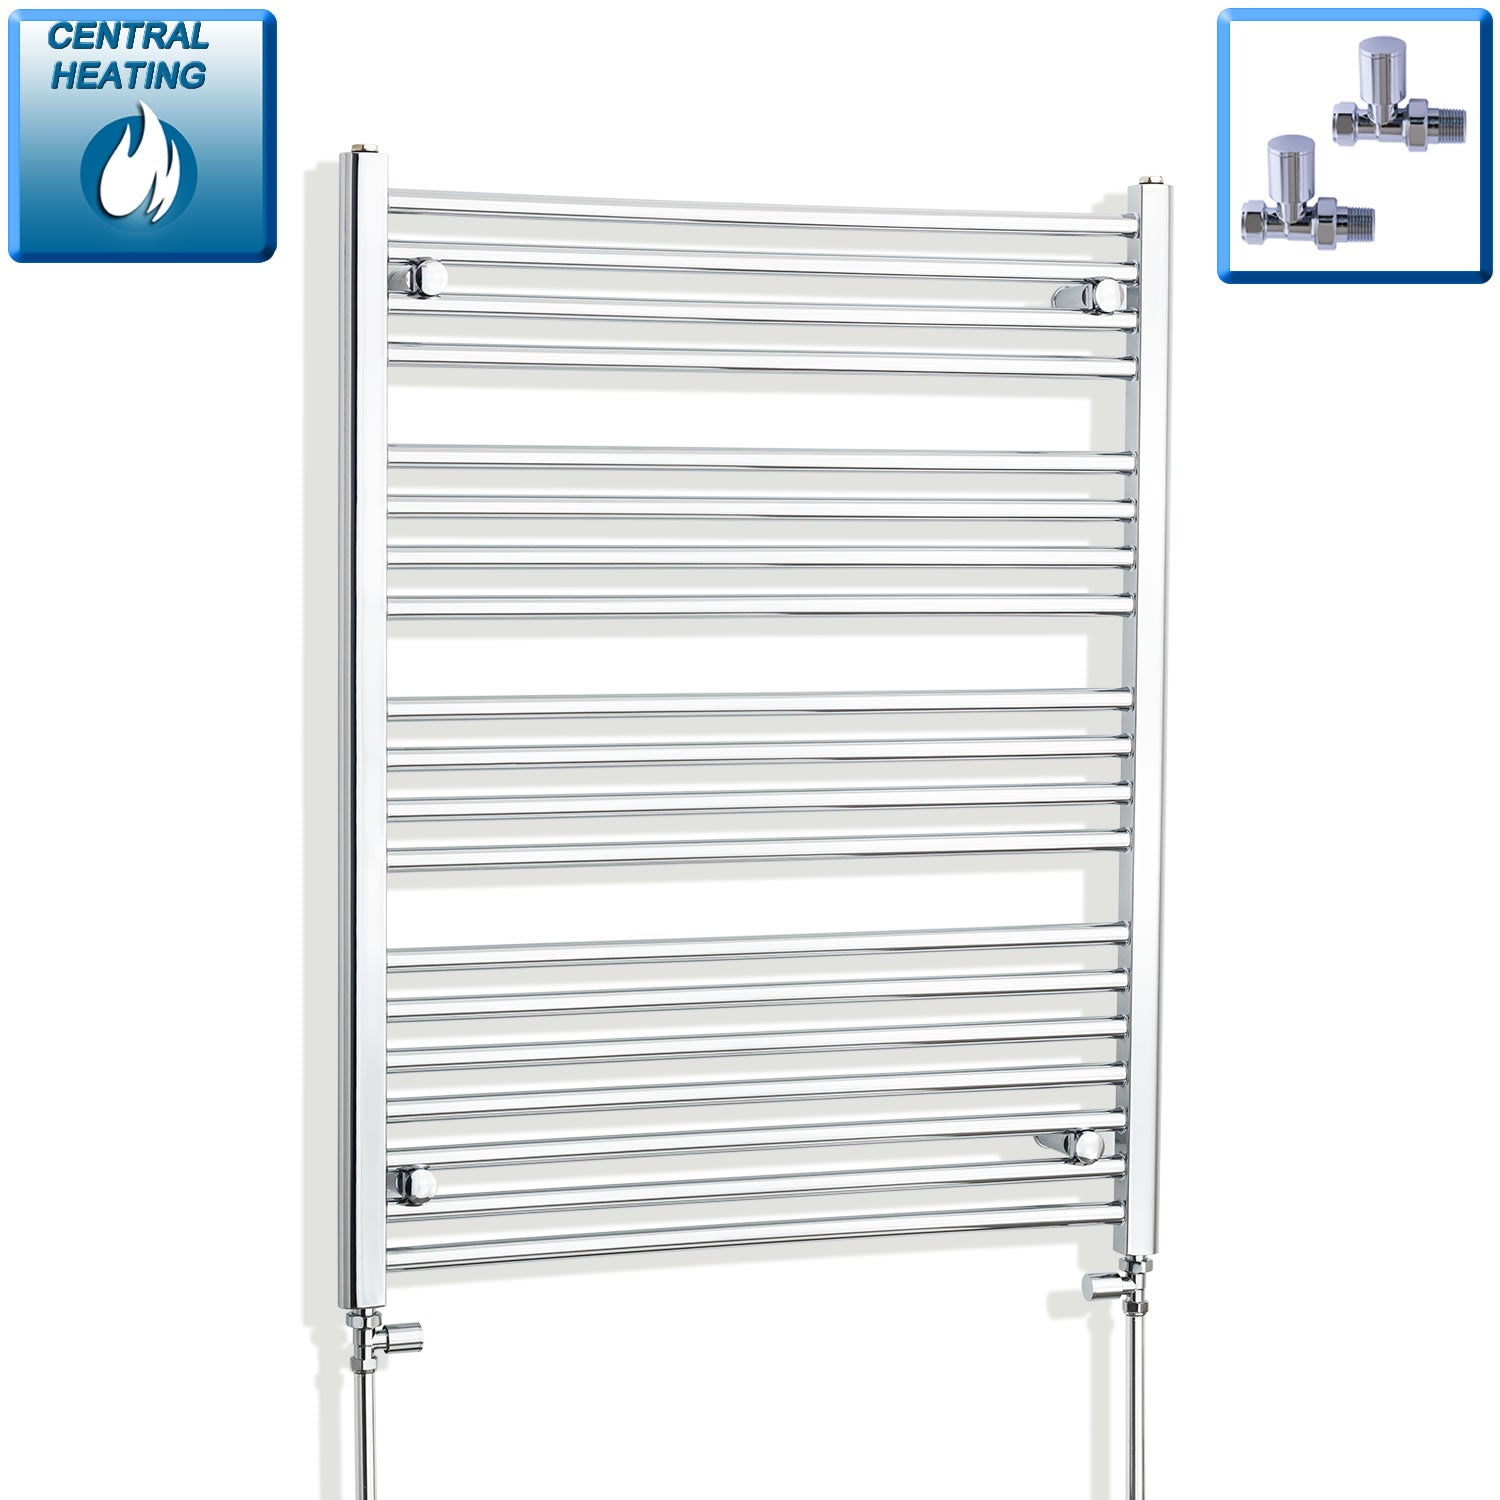 850mm Wide 1000mm High Flat Chrome Heated Towel Rail Radiator HTR,With Straight Valve